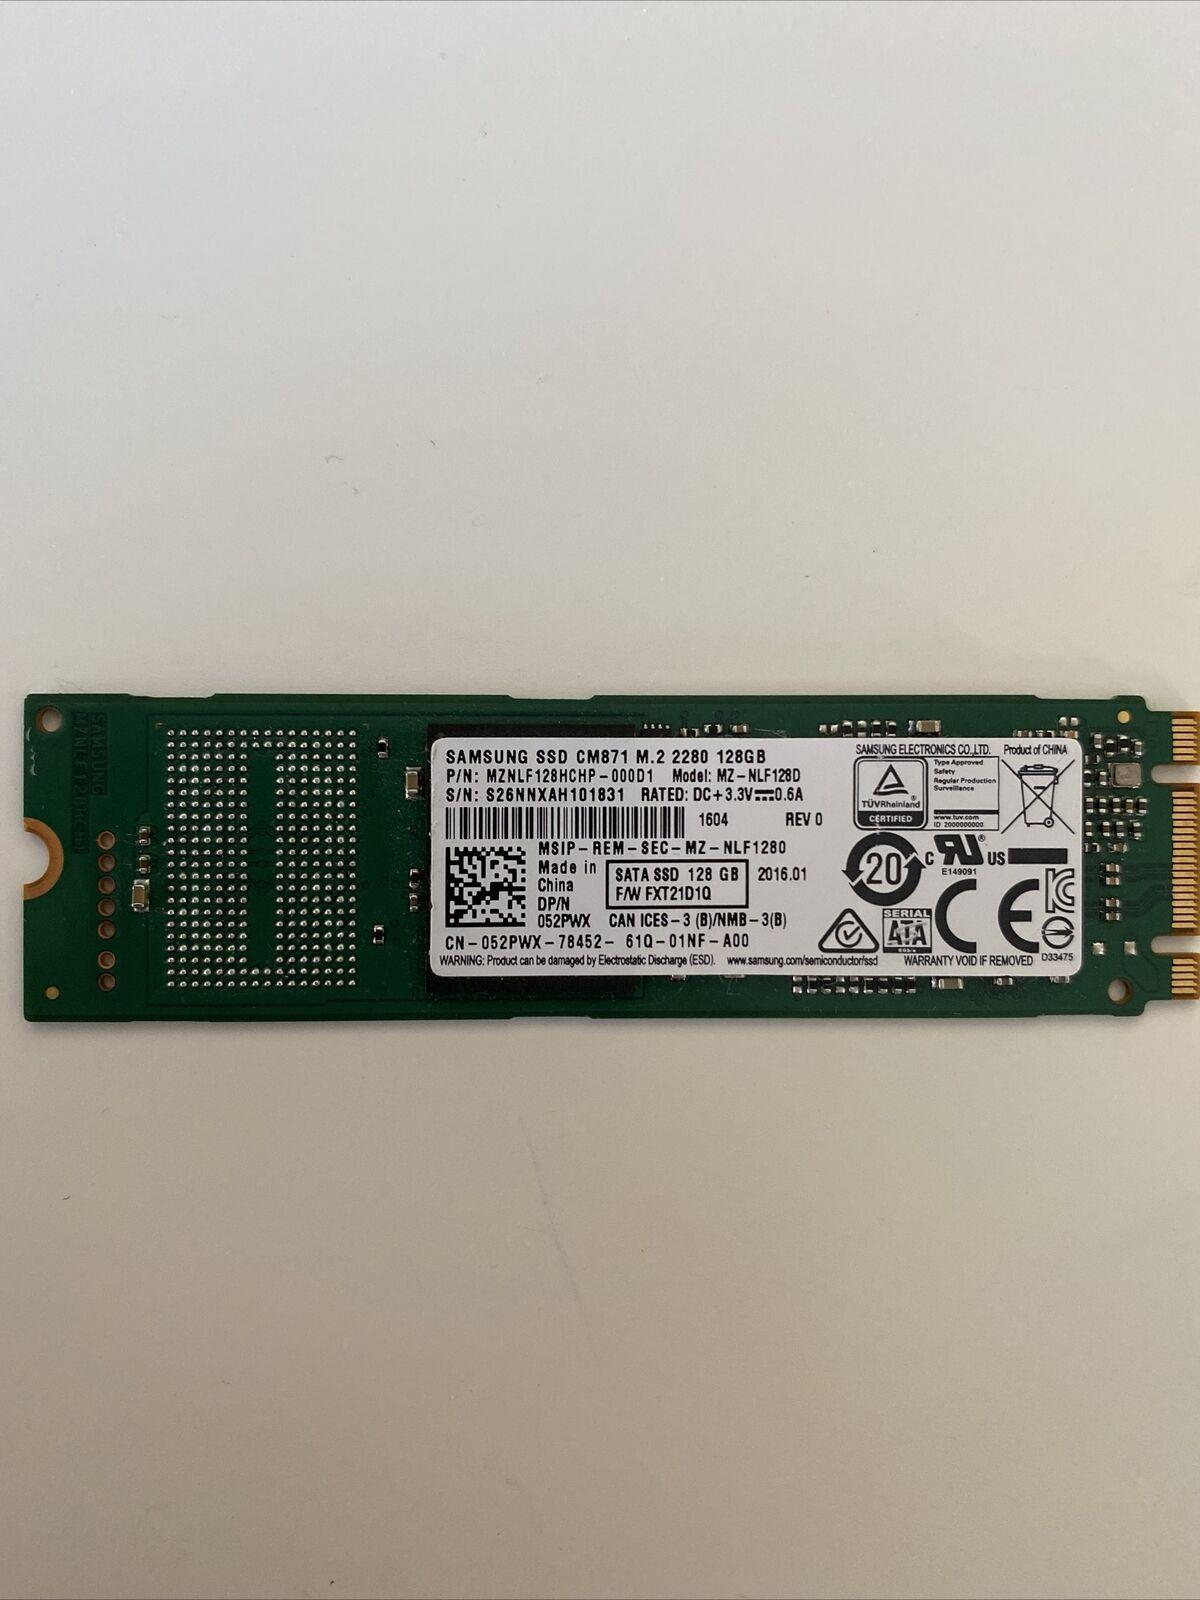 Samsung 128GB M.2  2280 Solid State Drive SSD. Buy it now for 20.00